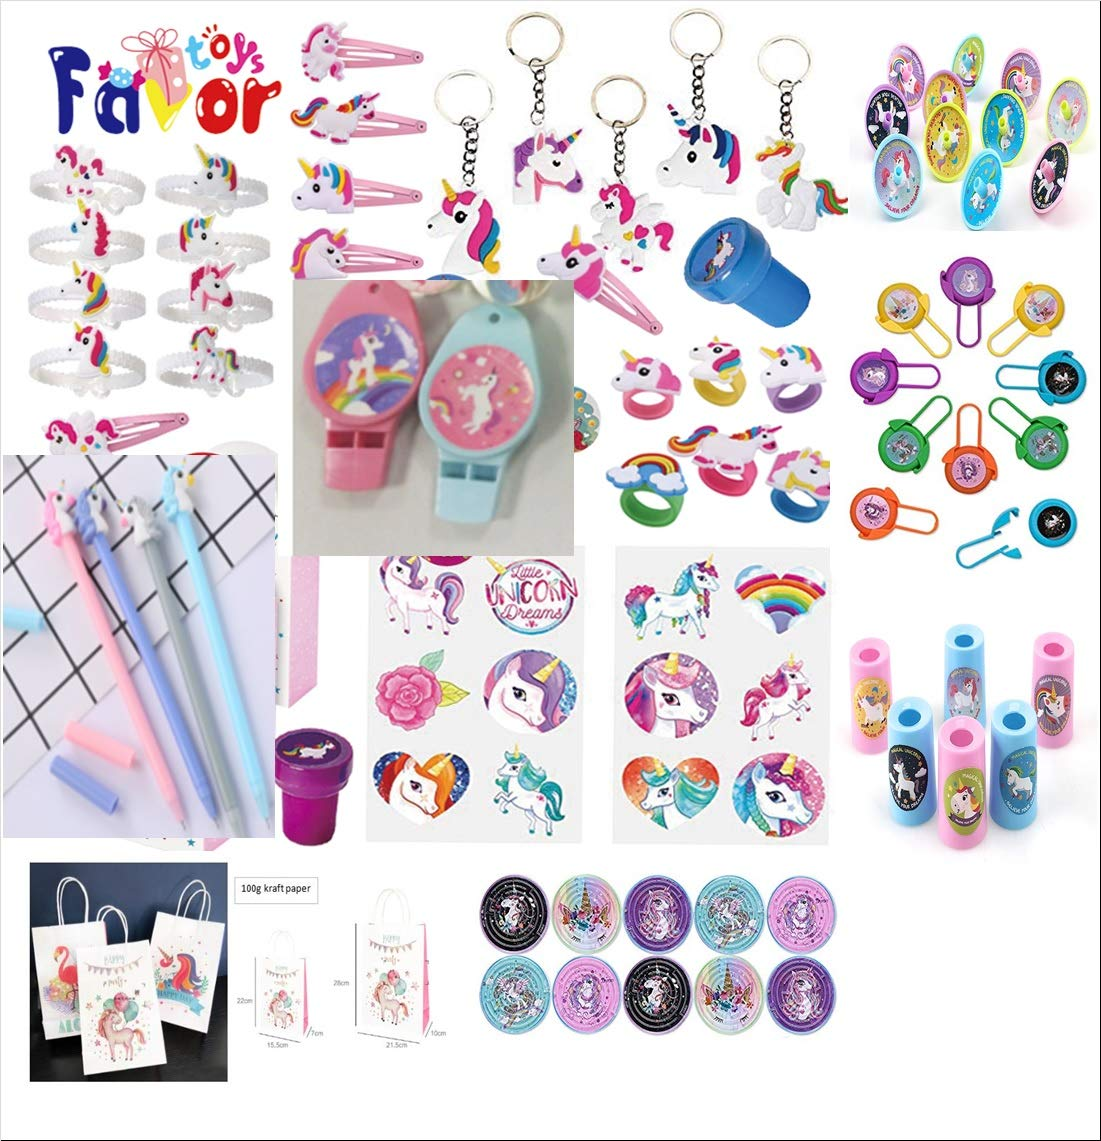 84-Pack Party Favors Temporary Tattoos Eddy Toys - Bracelet Wristbands Maze Games Rubber Stampers Unicorn-themed toys and remembrance gifts and prizes Whistles Keychains Rings Unicorn Ballpens. Hair Clips Flying Disc Shooters